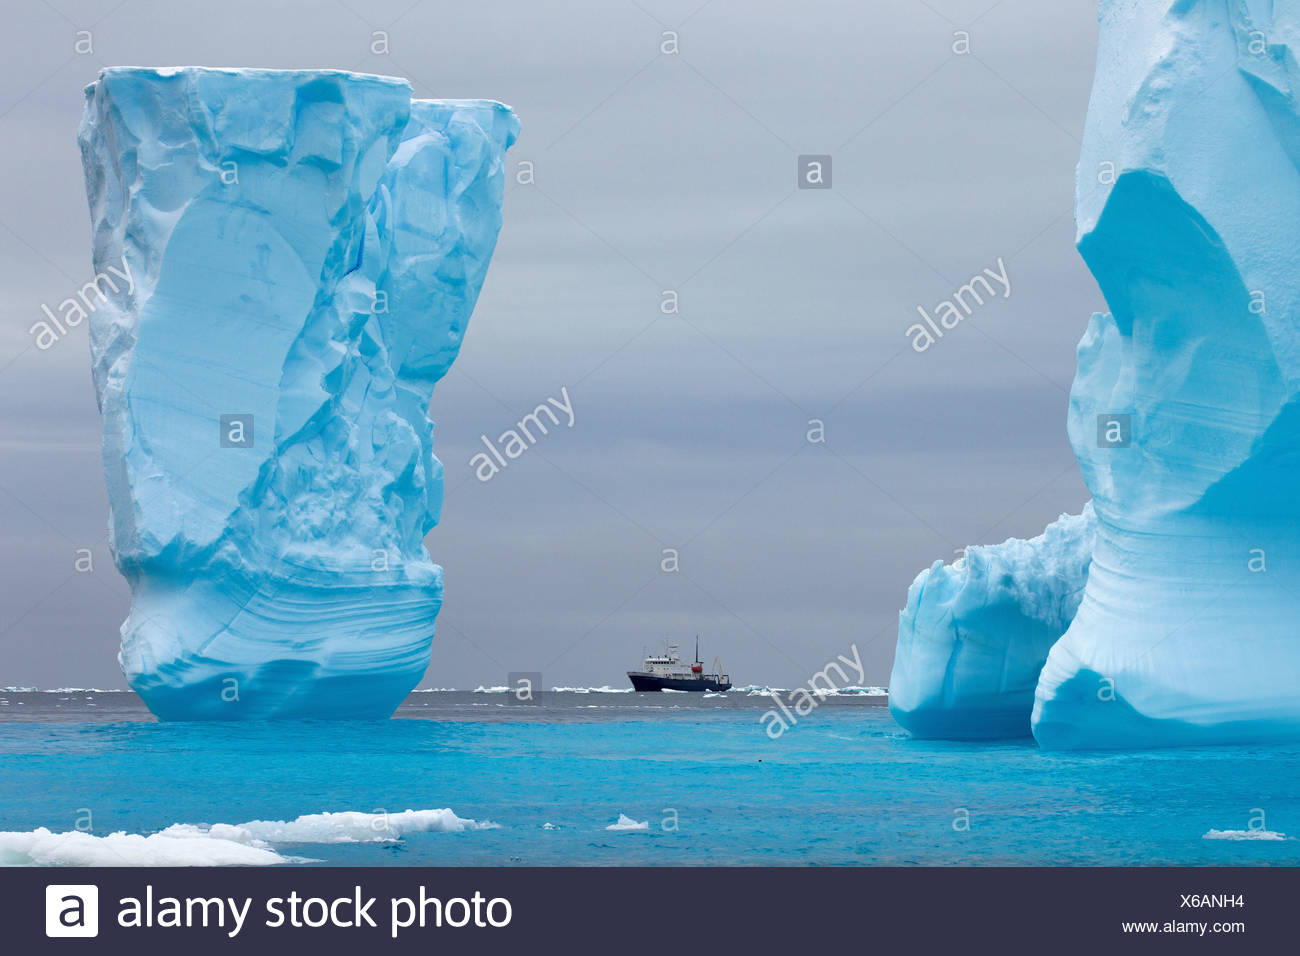 Adventure research ship Spirit of Enderby amongst ice bergs in the ice floe in the southern ocean - Stock Image